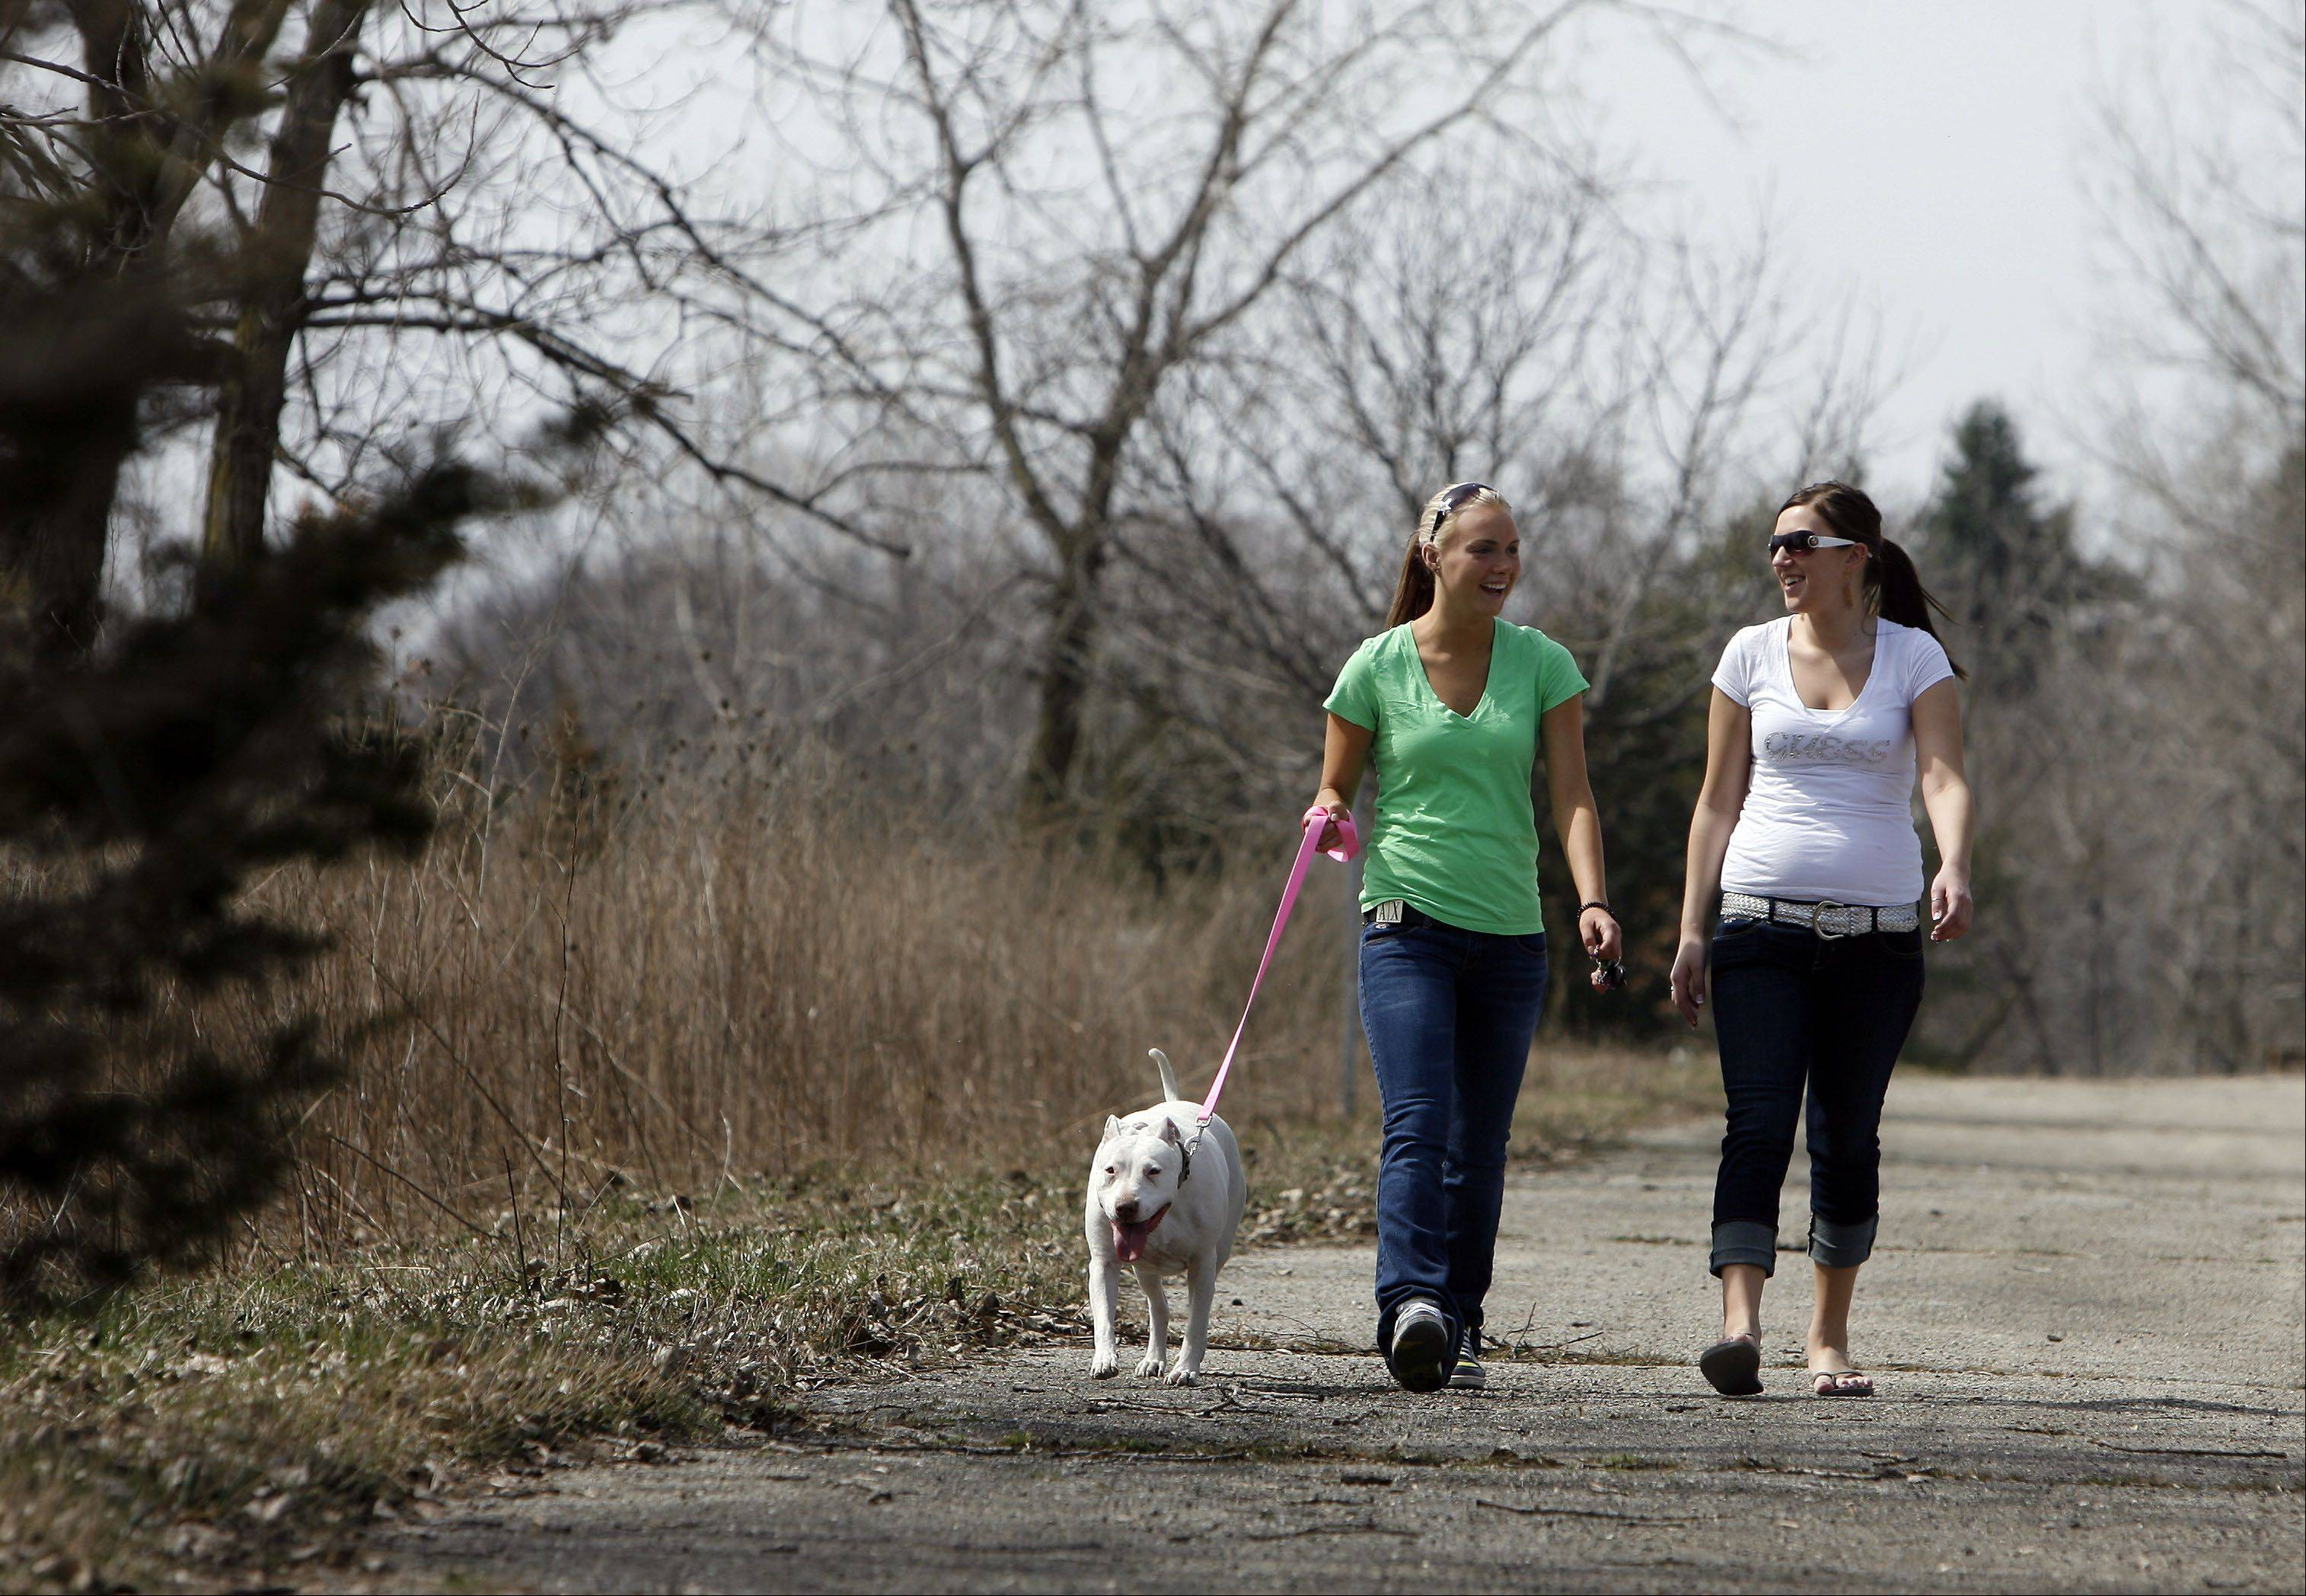 Klaudia Tabor, left, and Kayle Keehn, both of Algonquin, along with Pepper, a pit bull, take a walk through Raceway Woods in Carpentersville.